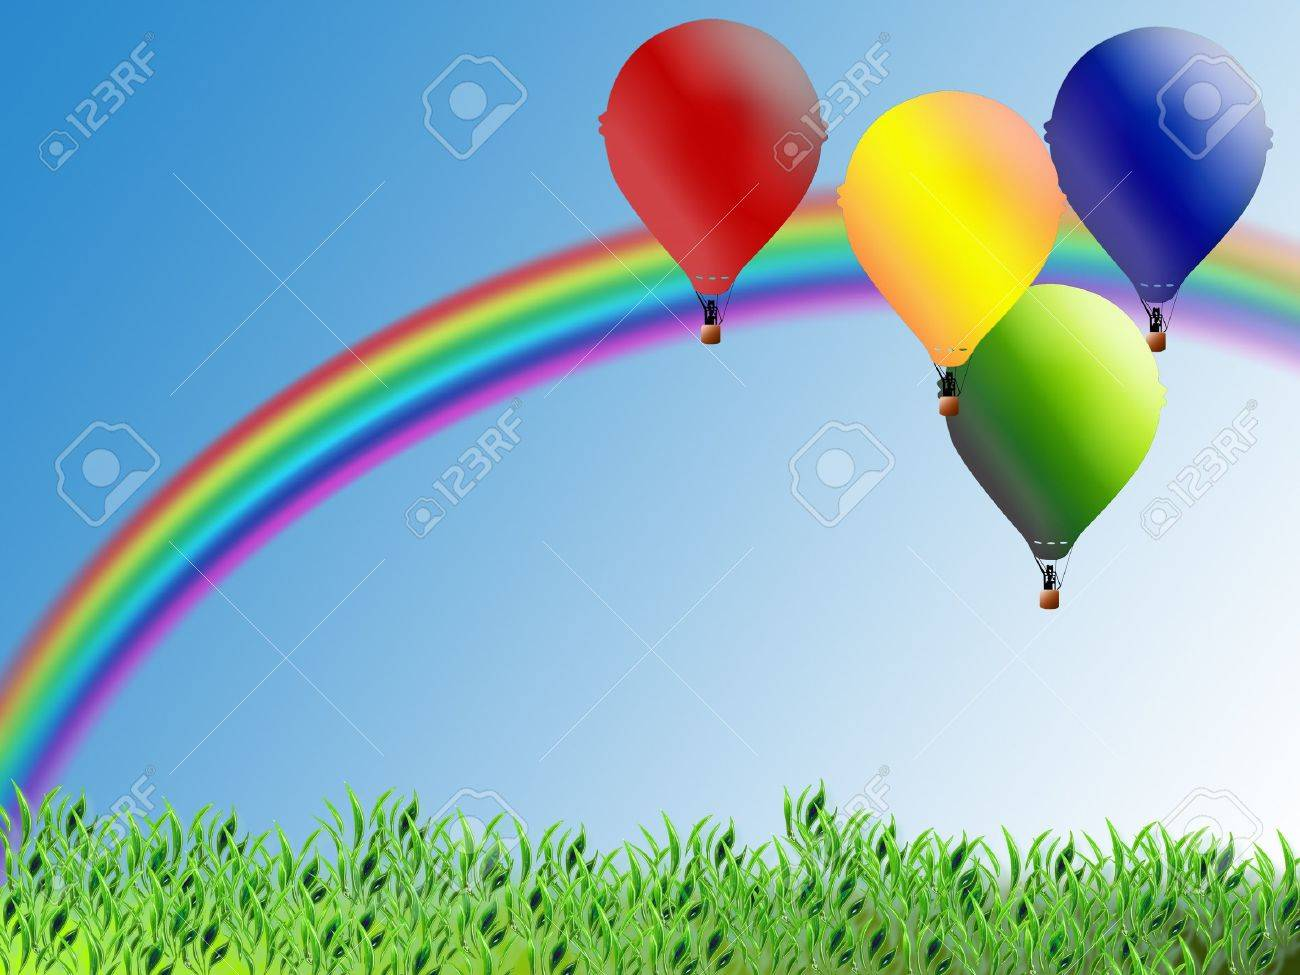 Illustration for children with balloons and rainbow Stock Photo - 7947426